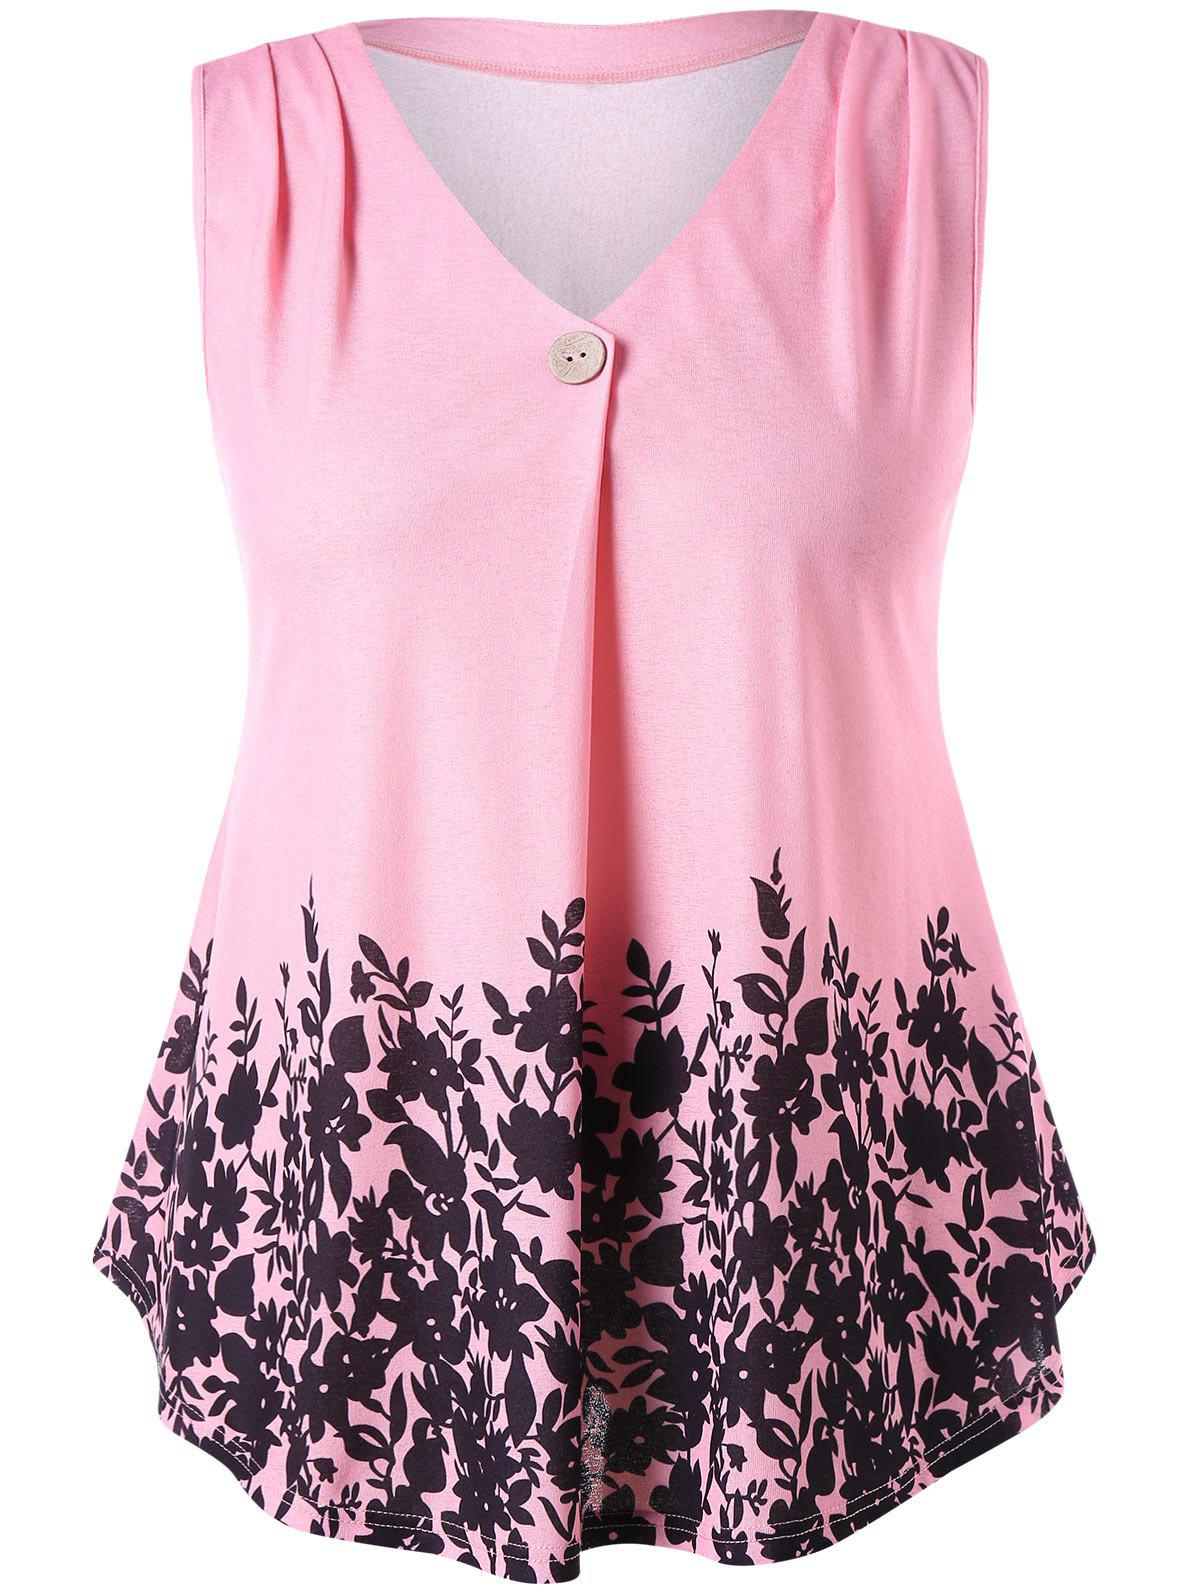 Plant Printed Plus Size Sleeveless T-shirt - LIGHT PINK 5X